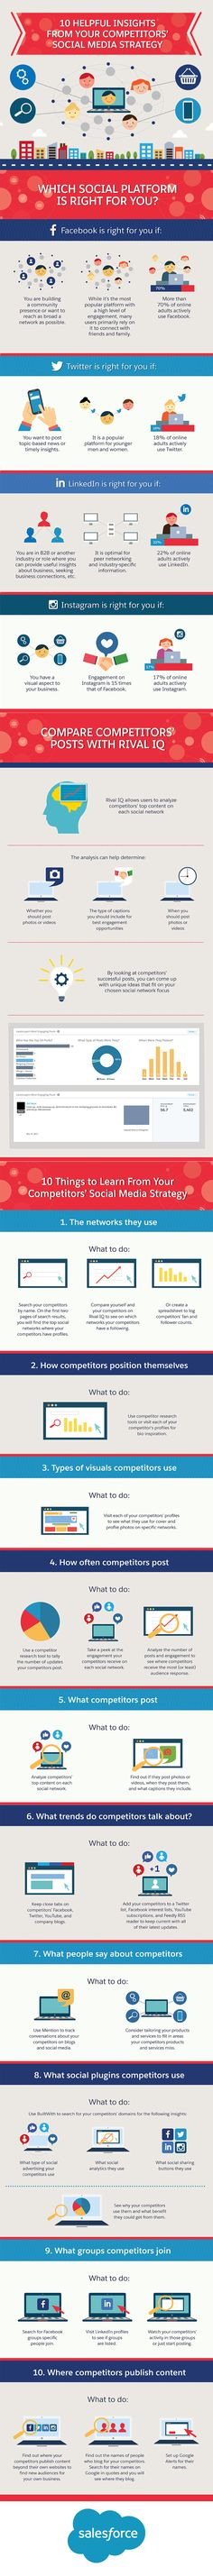 10 Things You Can Learn from Competition on #SocialMedia - #infographic